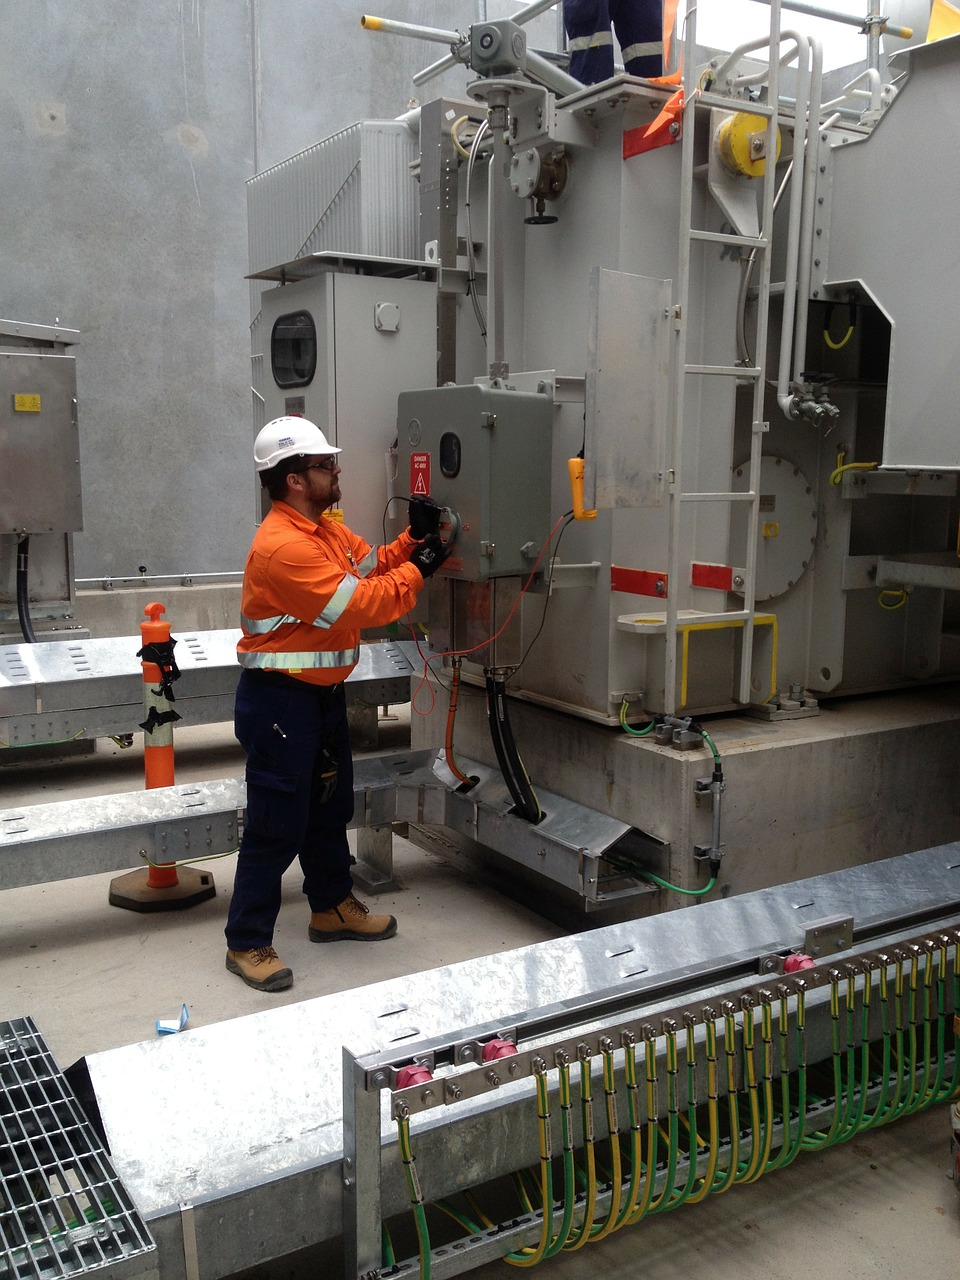 electrical services hv testing hv testing equipment free photo